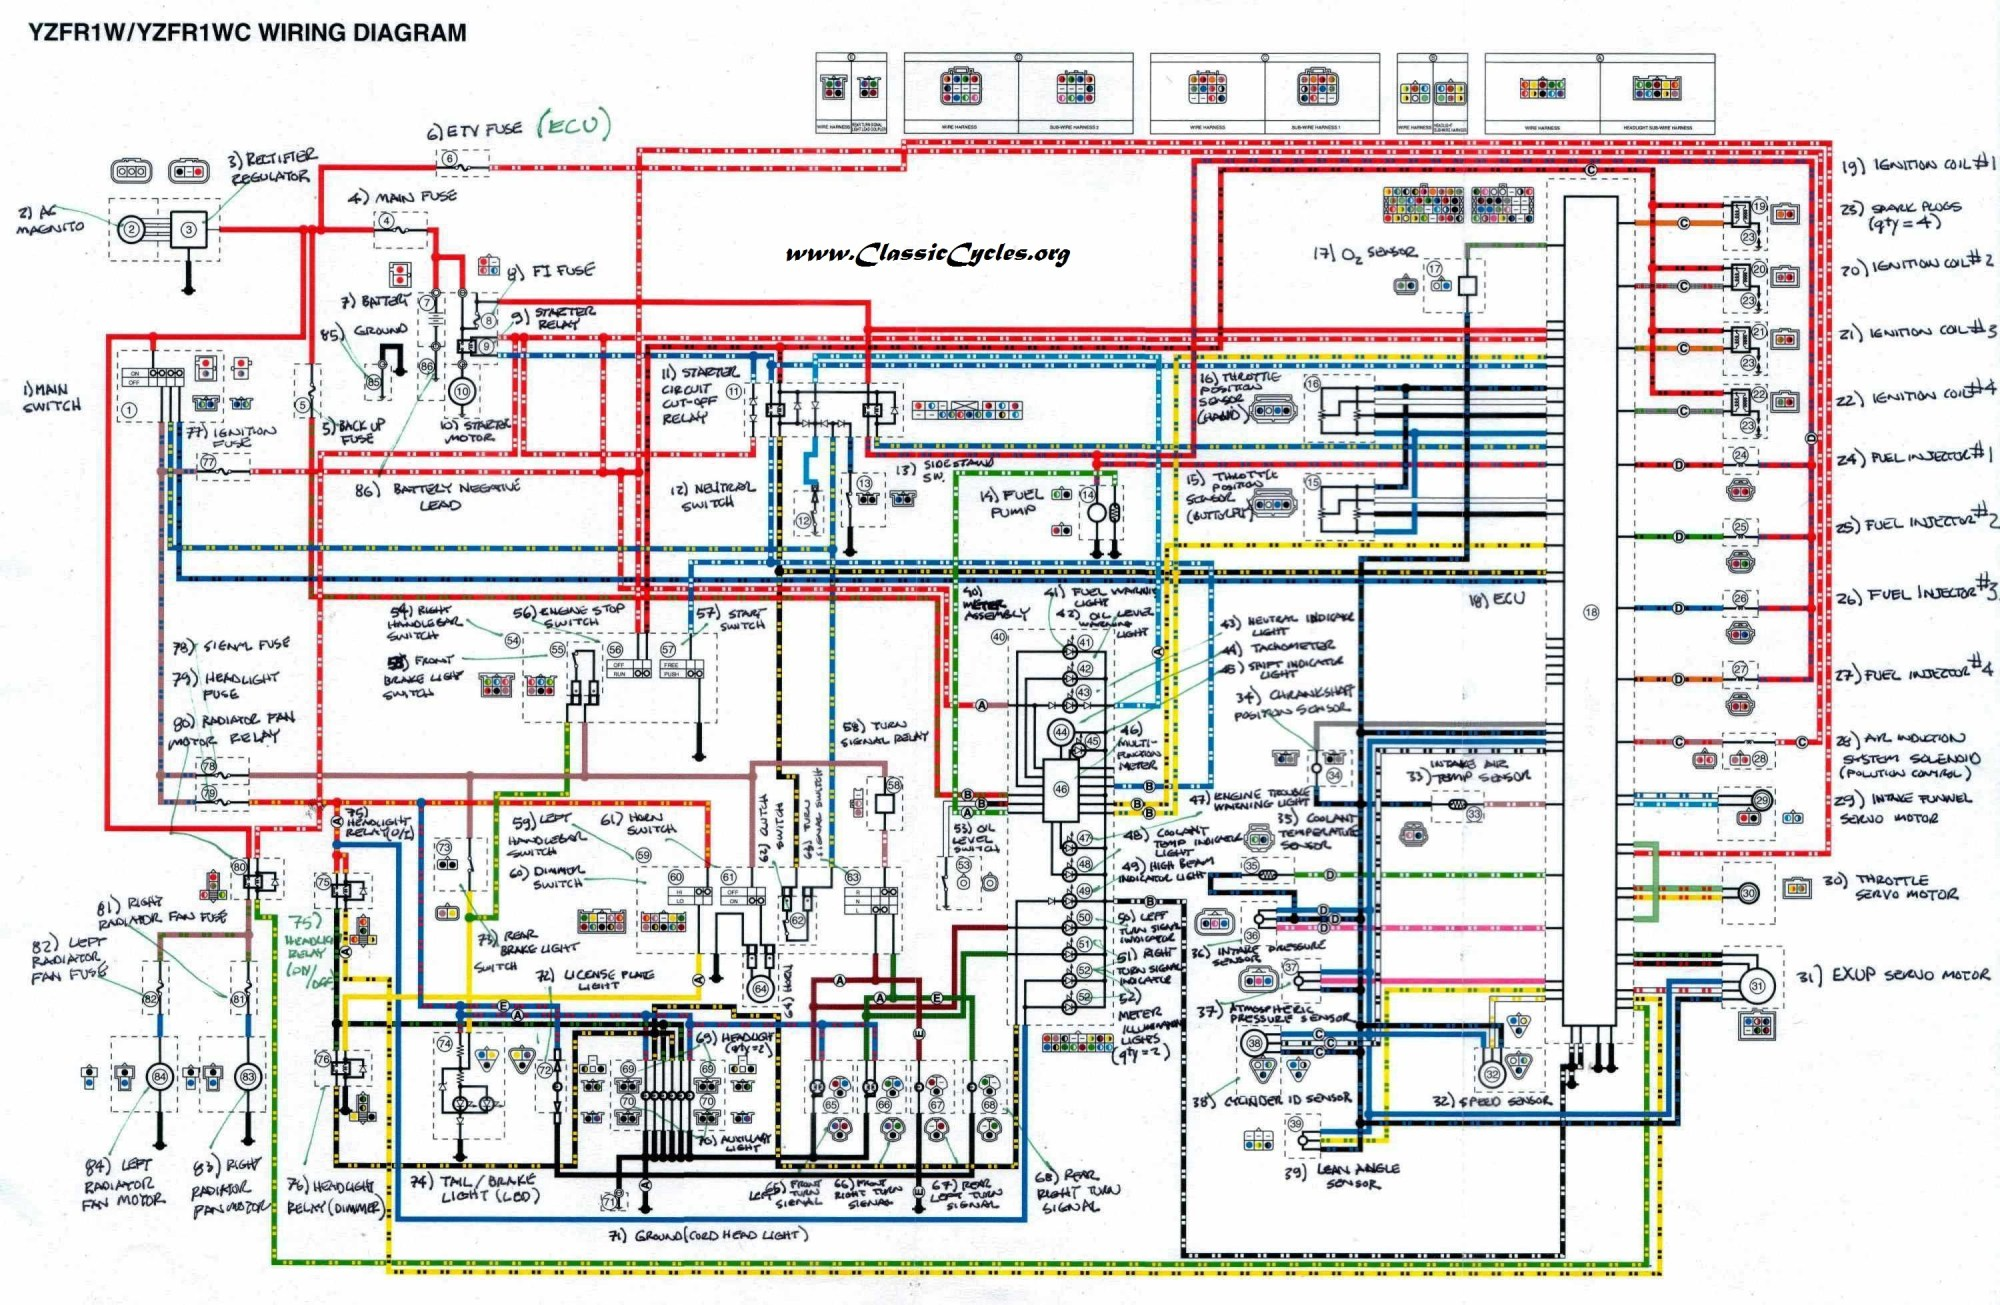 hight resolution of yamaha breeze 125 wiring diagram box wiring diagram wire harness schematic 1963 galaxy 500 yamaha breeze wire harness schematics